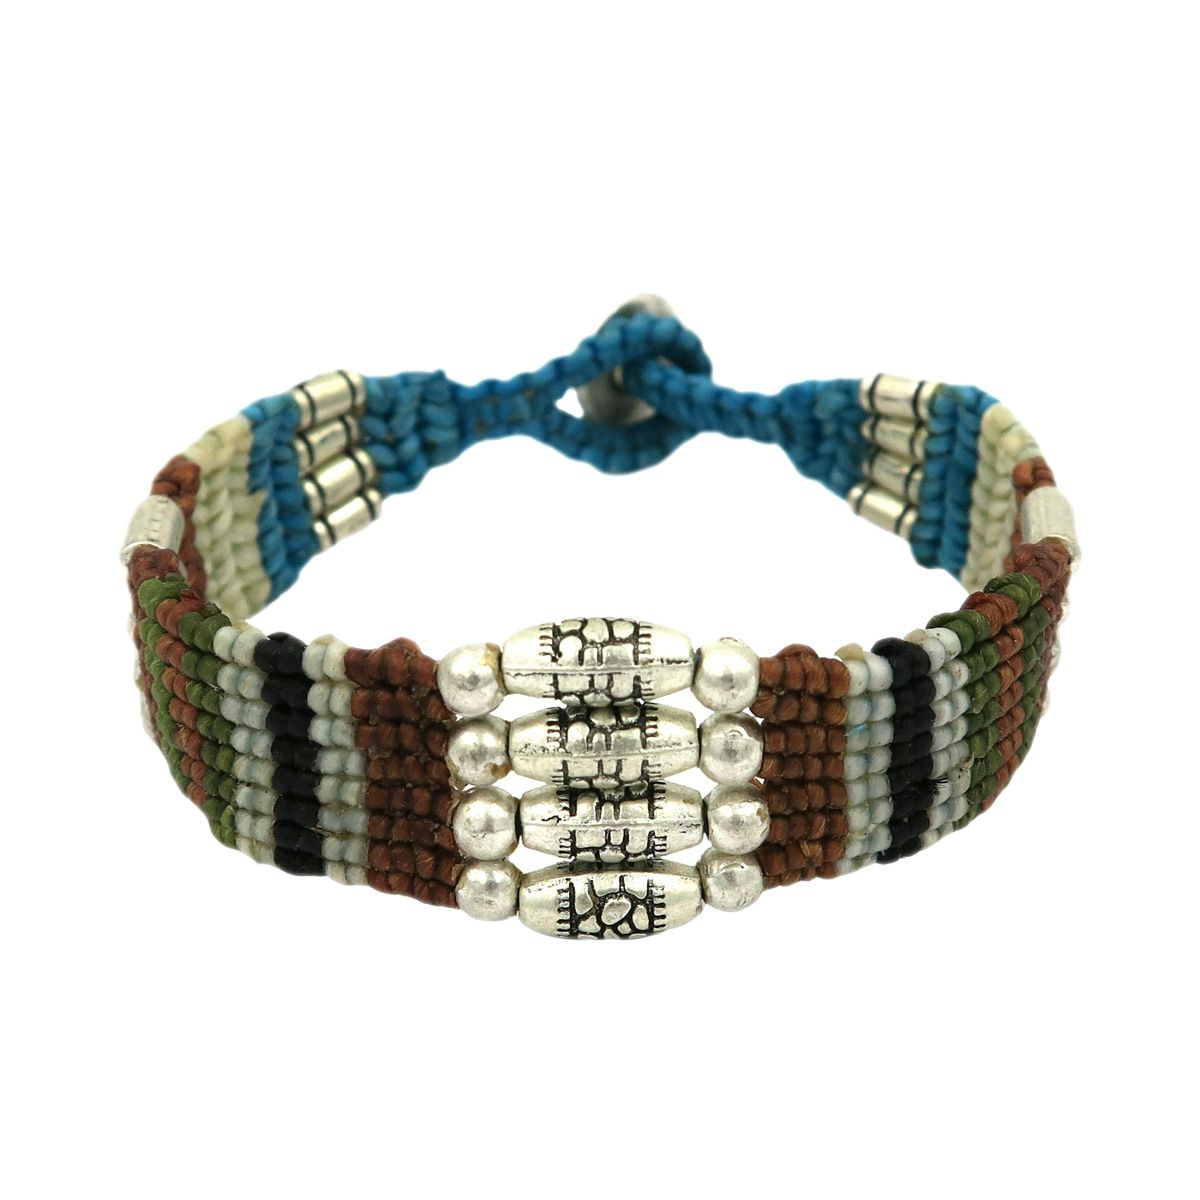 Made in Bali Exotic Bracelet